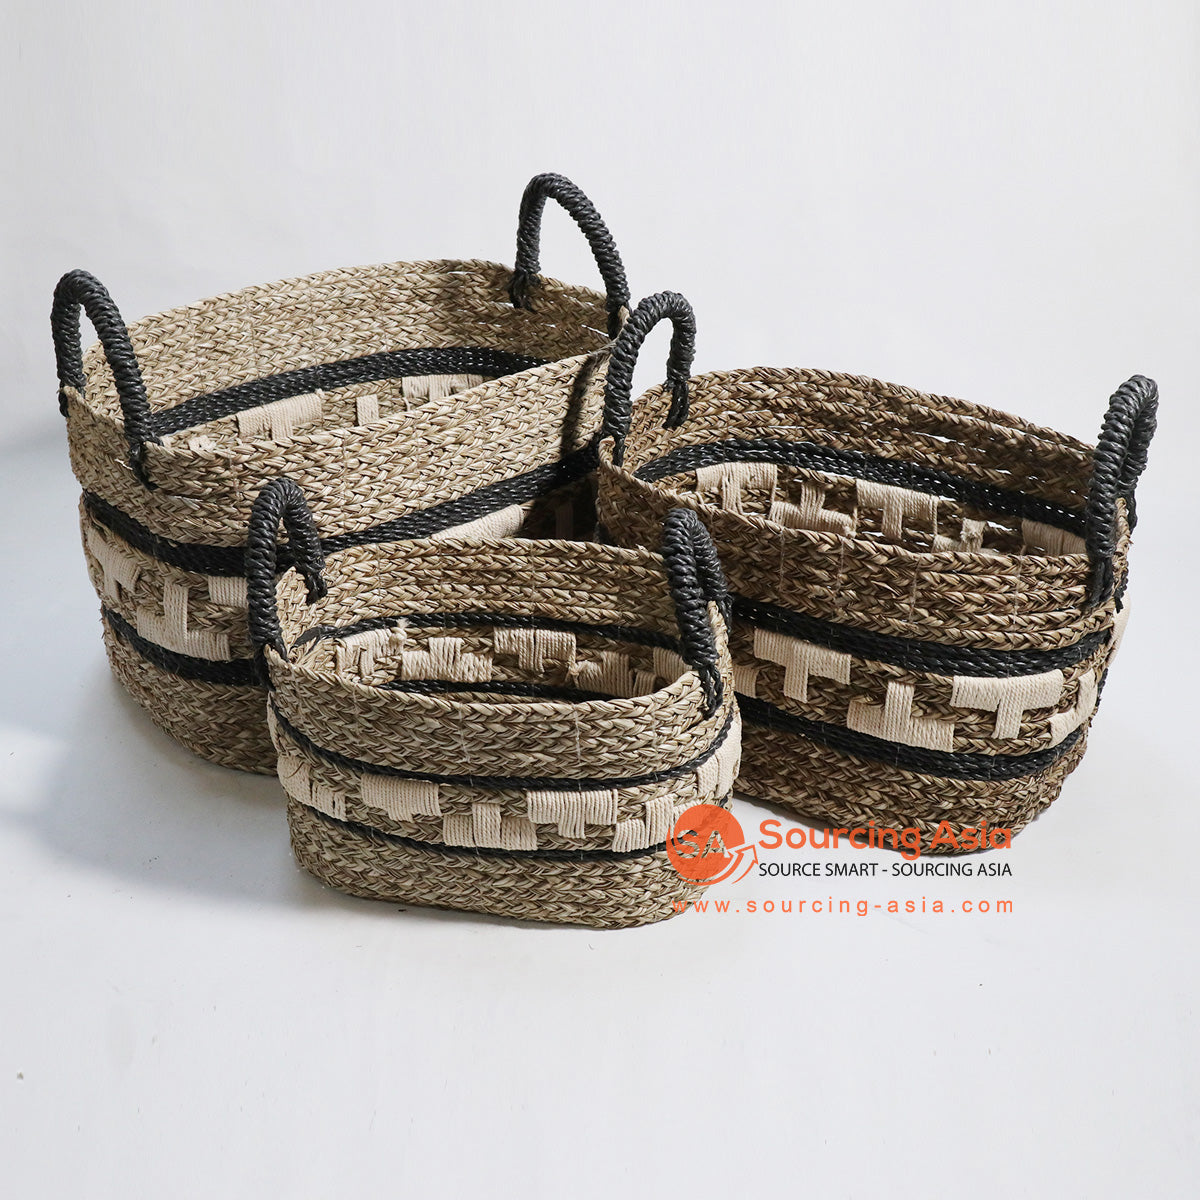 HBSC135 SET OF 3 MENDONG AND MACRAME BASKETS